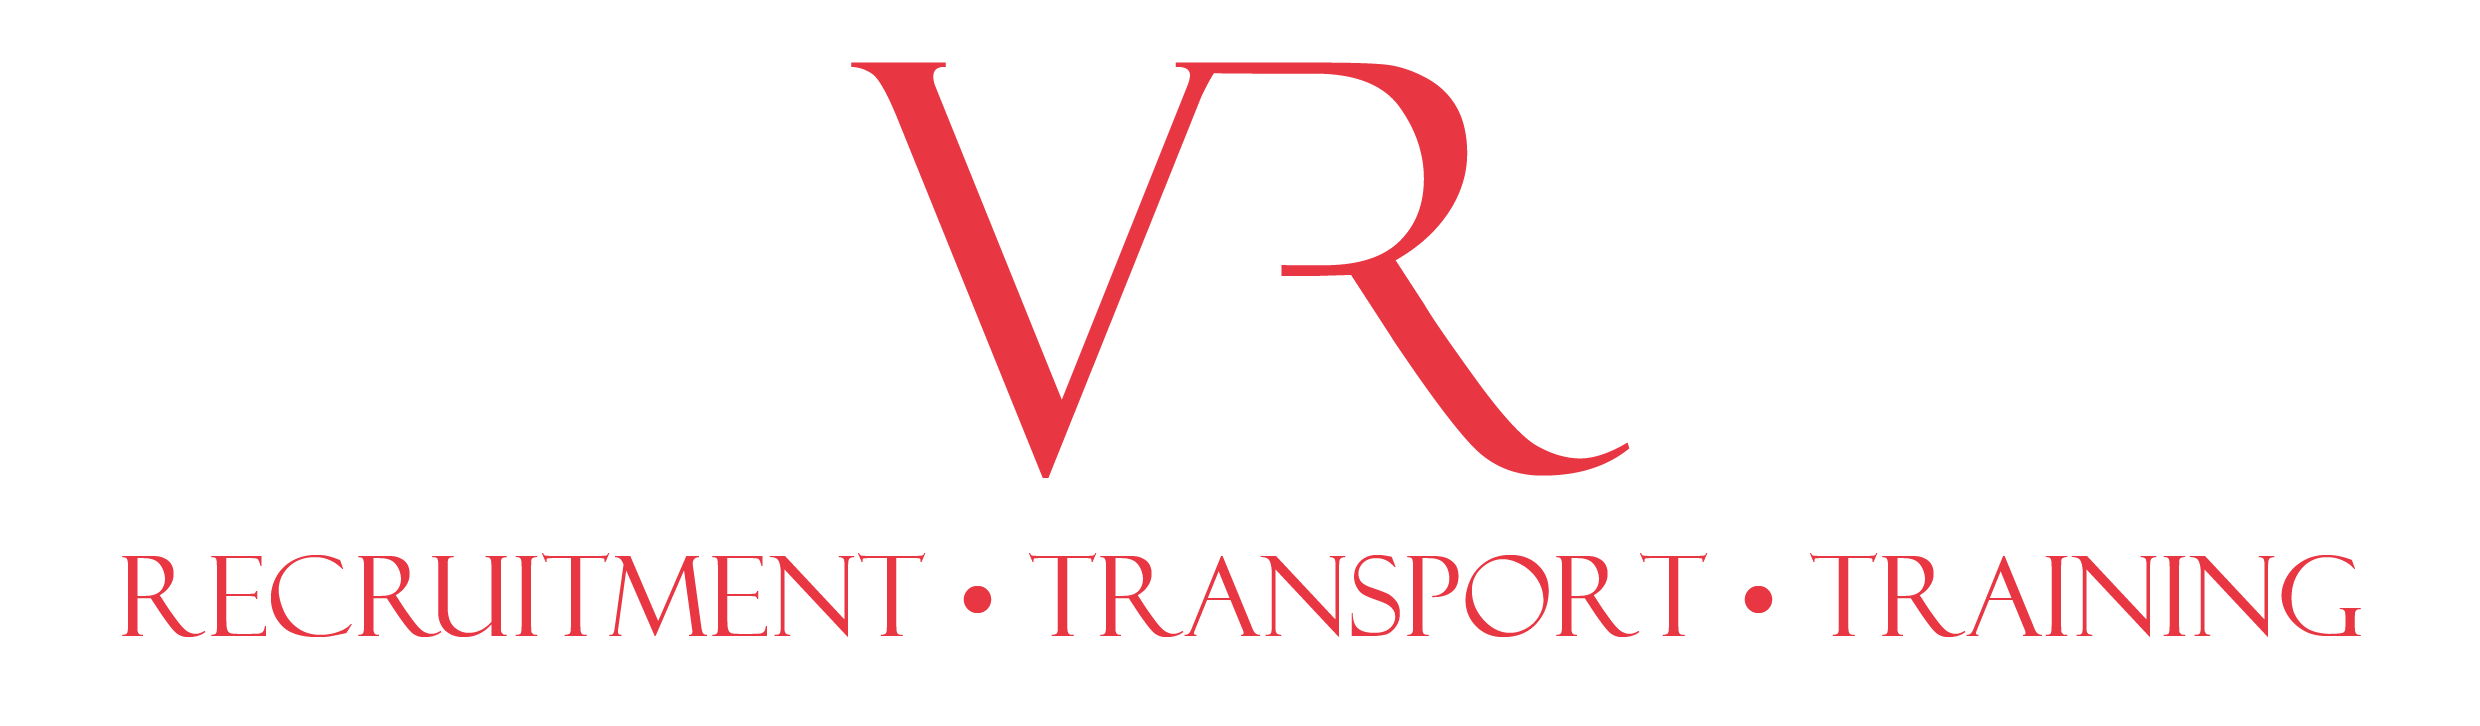 Virtue Recruitment Services Ltd